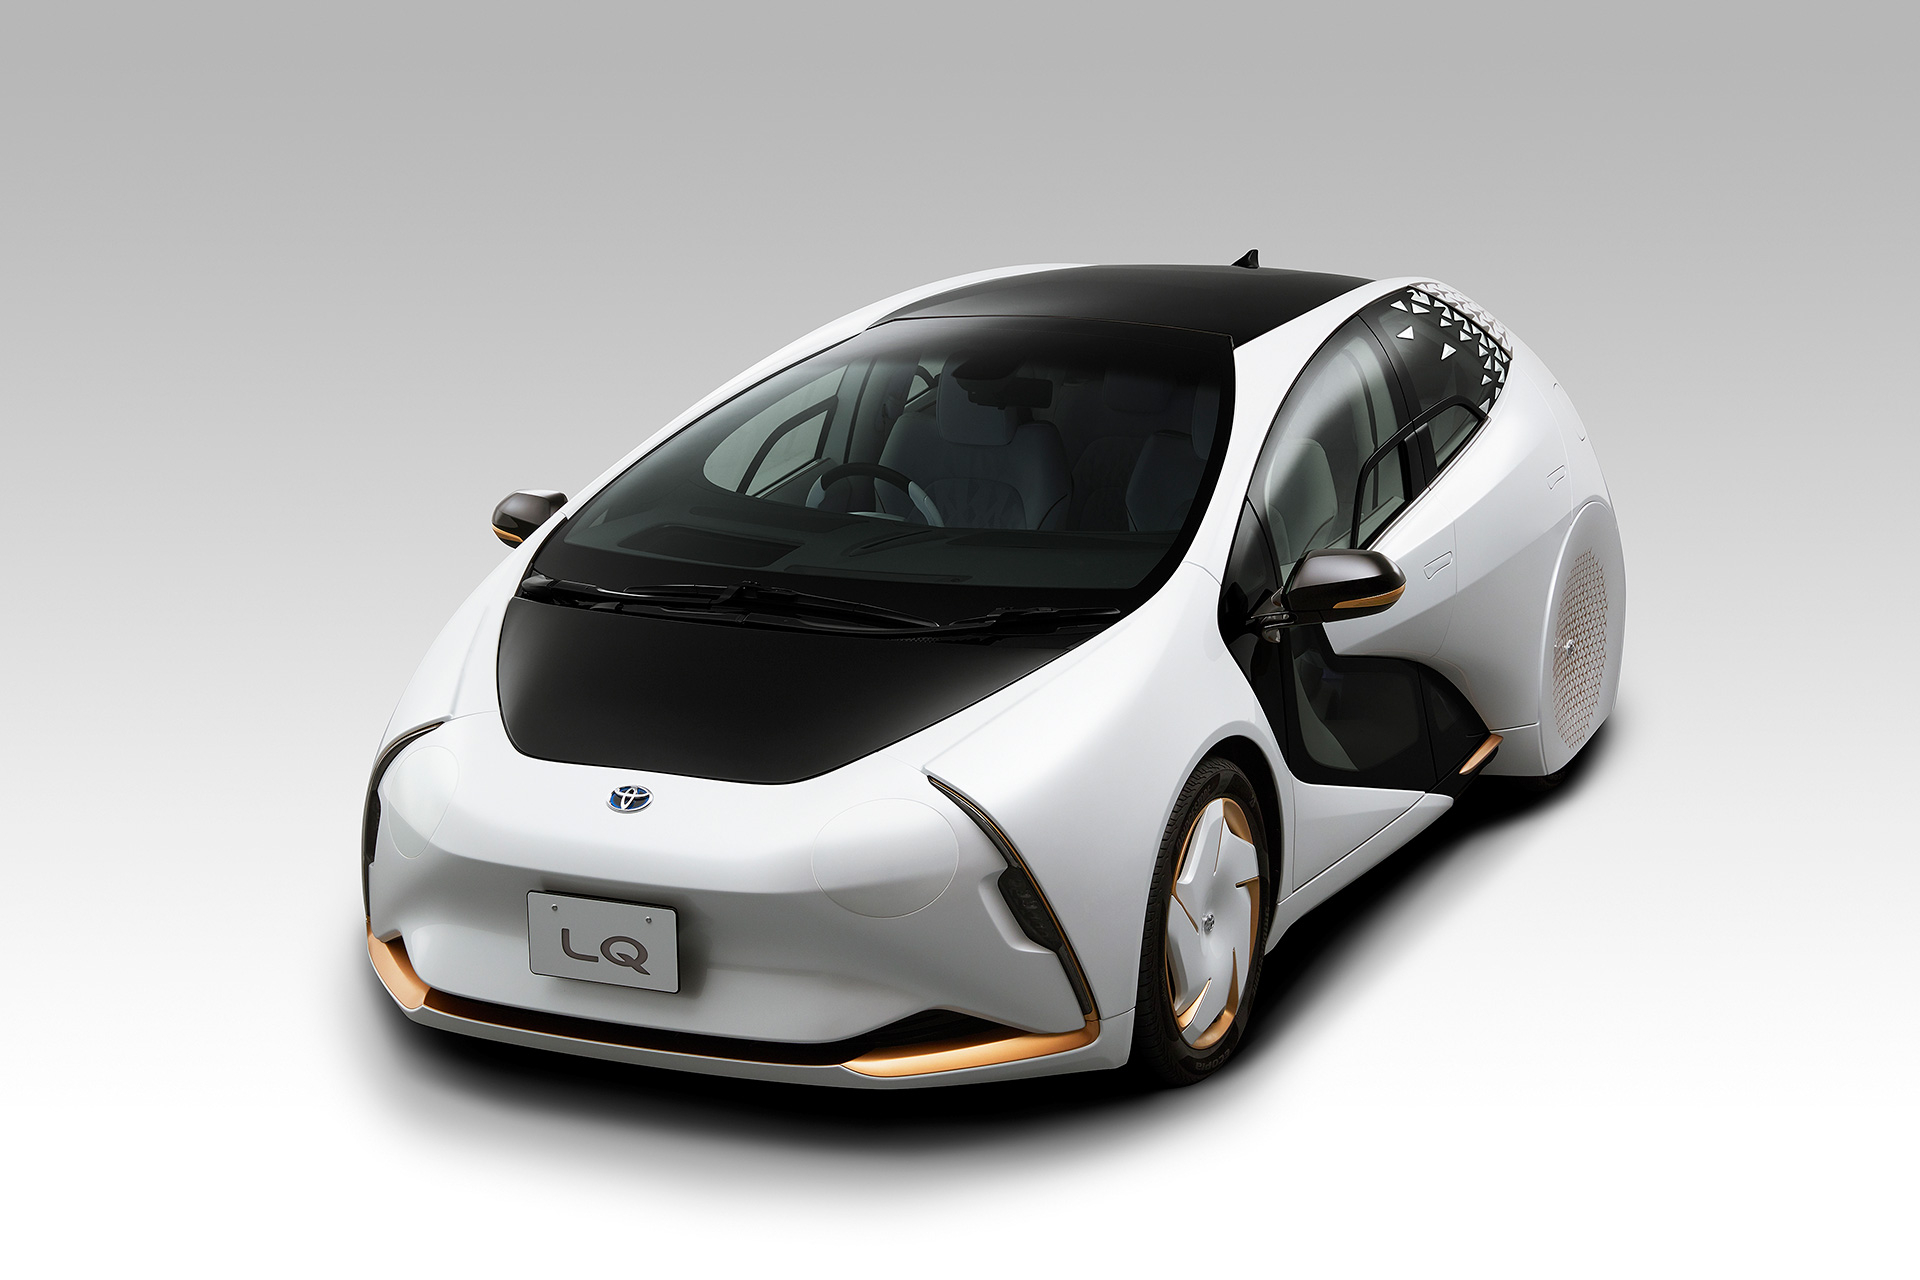 Toyota S New Lq Wants To Build An Emotional Bond With Its Driver Corporate Global Newsroom Toyota Motor Corporation Official Global Website